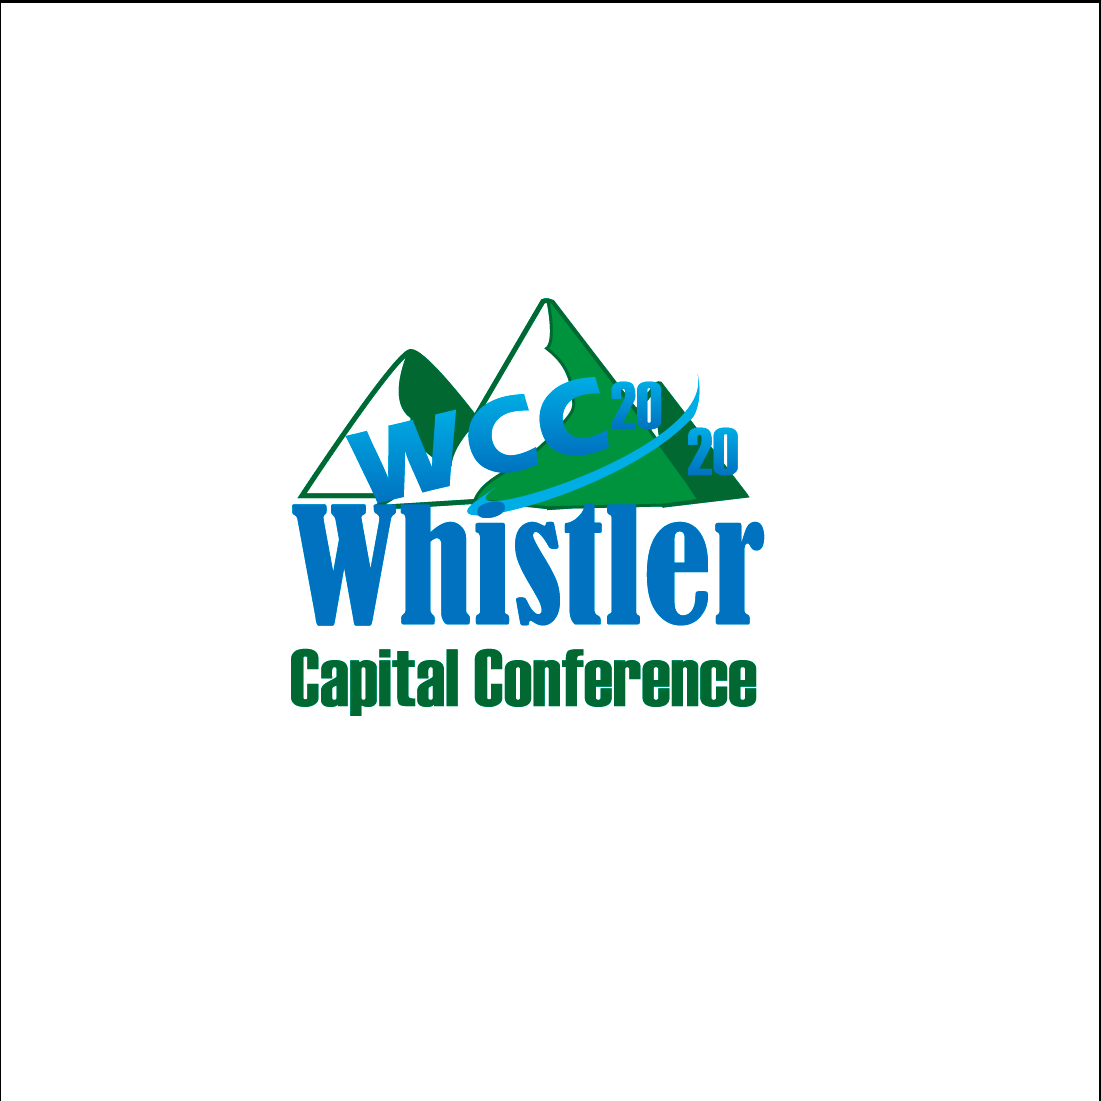 Logo Design by devil_art213 - Entry No. 15 in the Logo Design Contest Whistler Capital Conference.